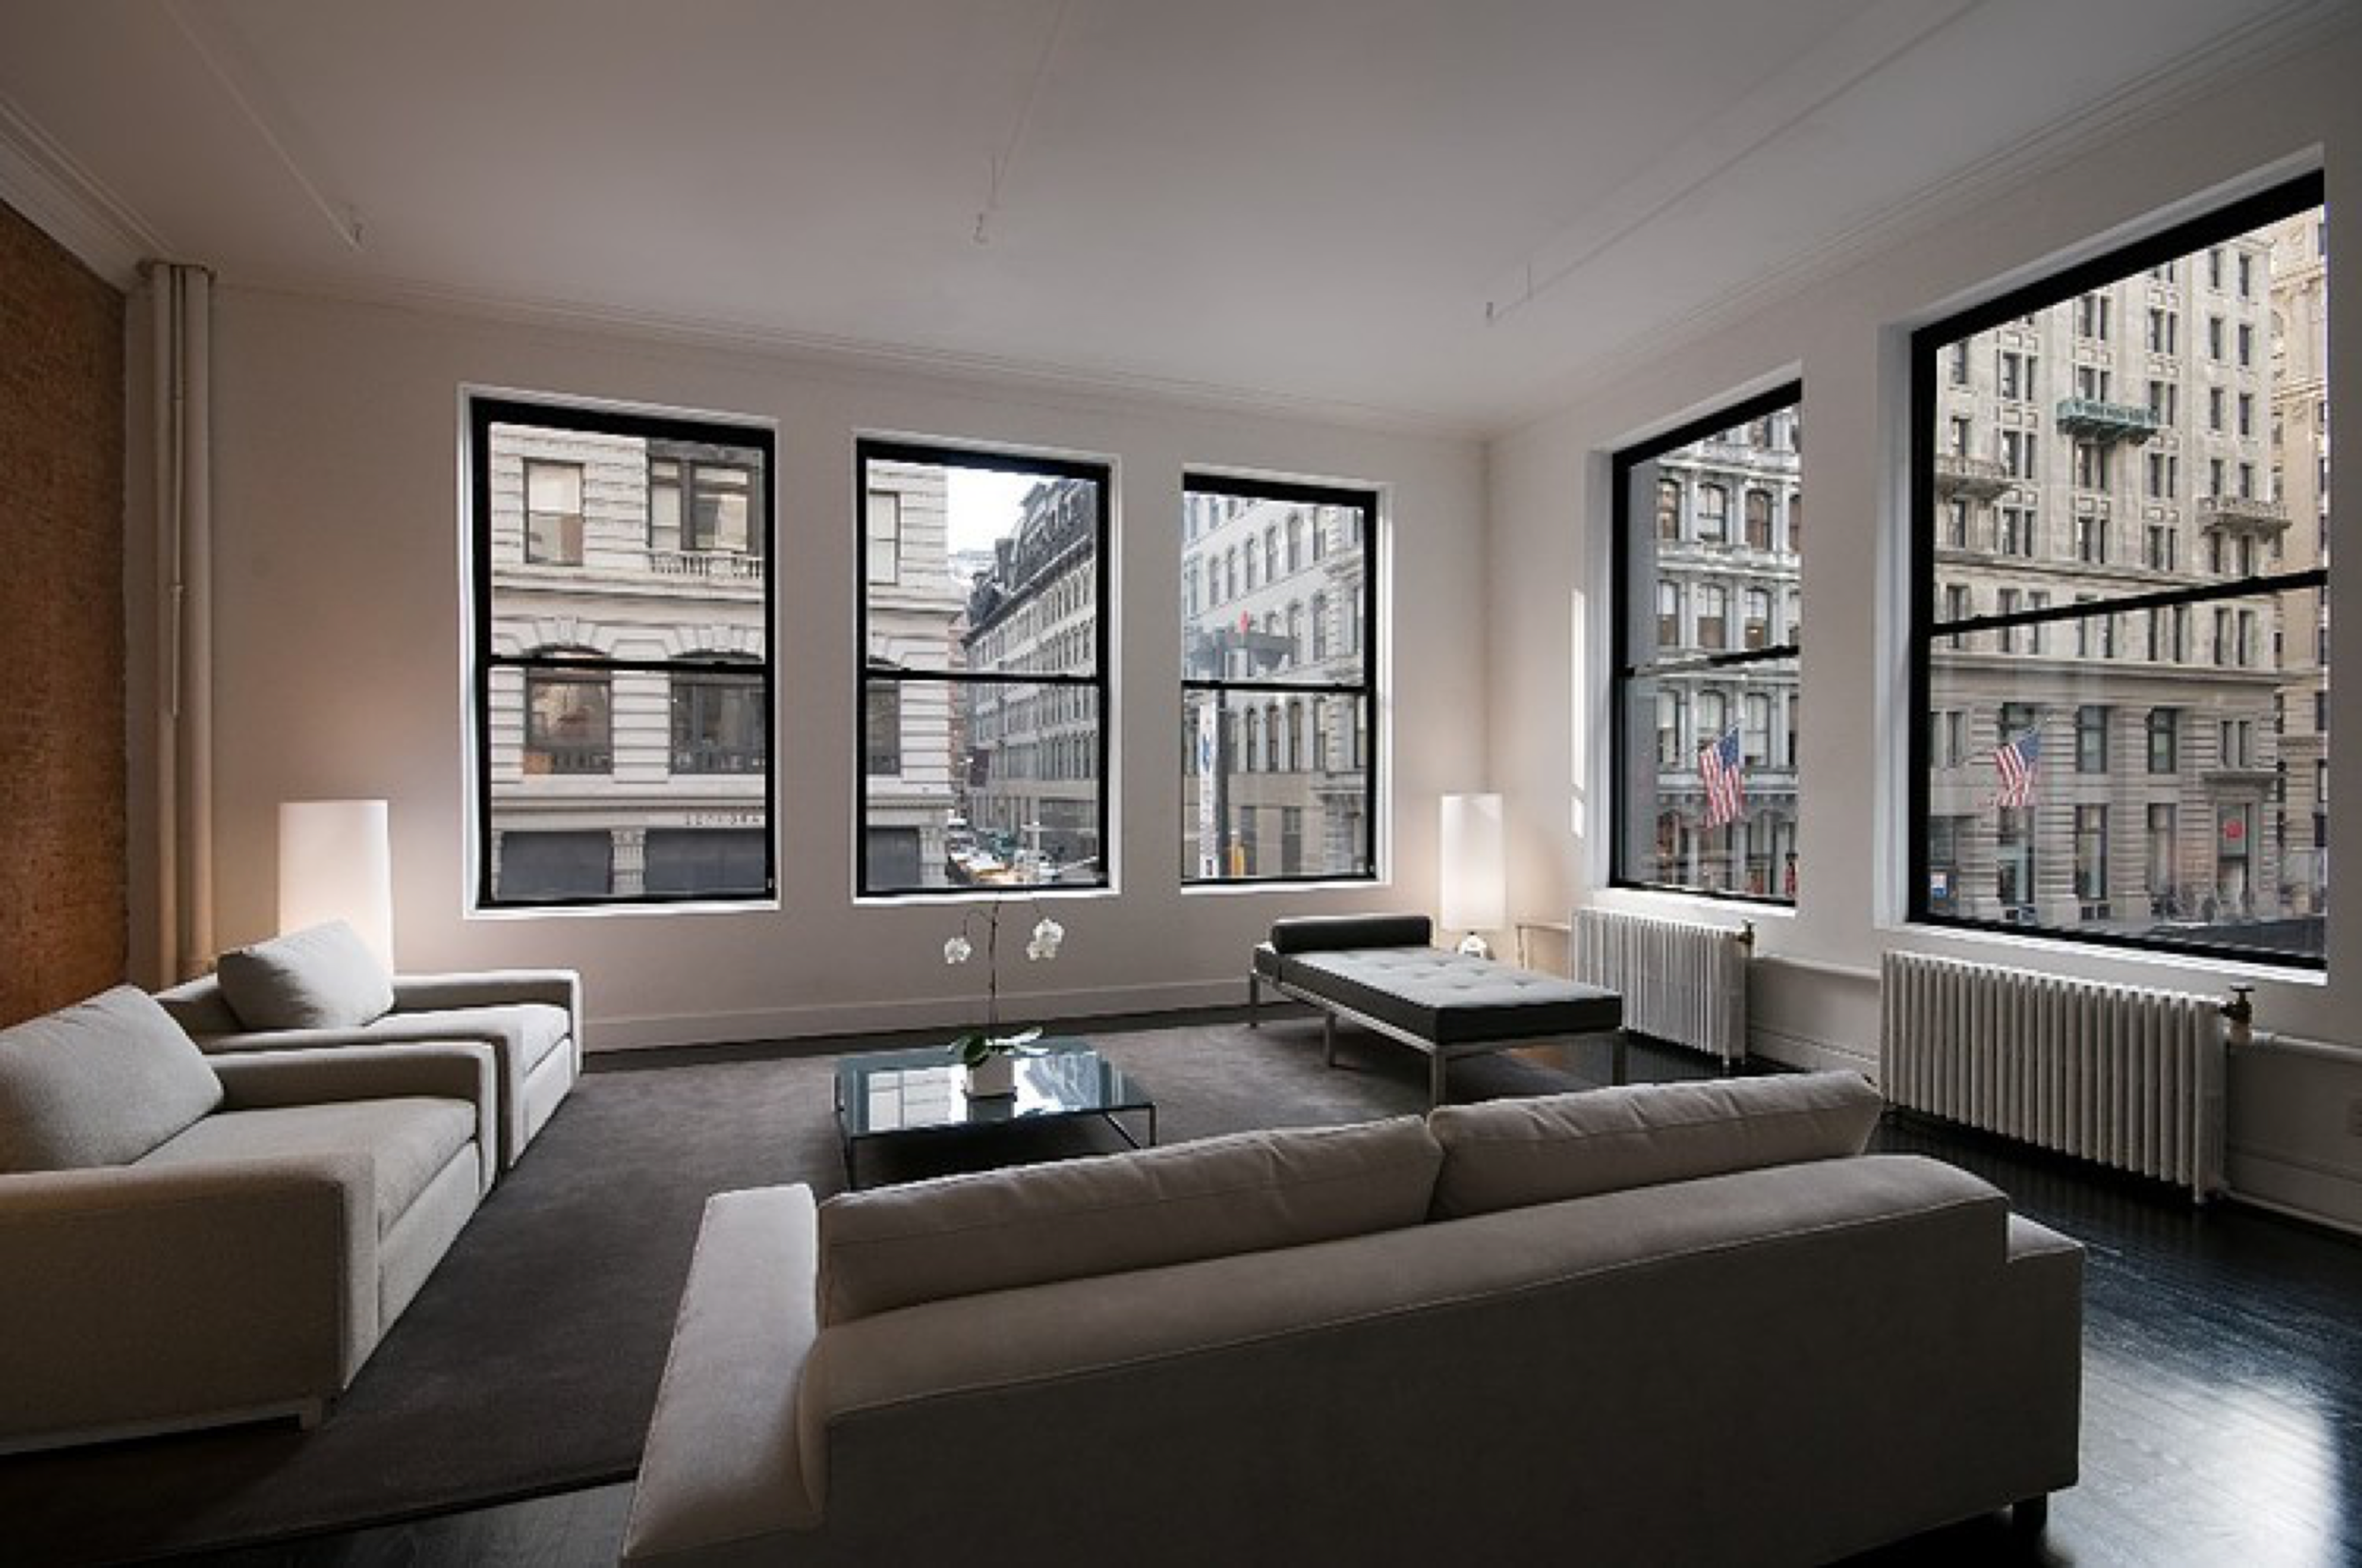 How Much Does It Cost To Combine Two Apartments Into A 4 Bedroom Condo In  Tribeca